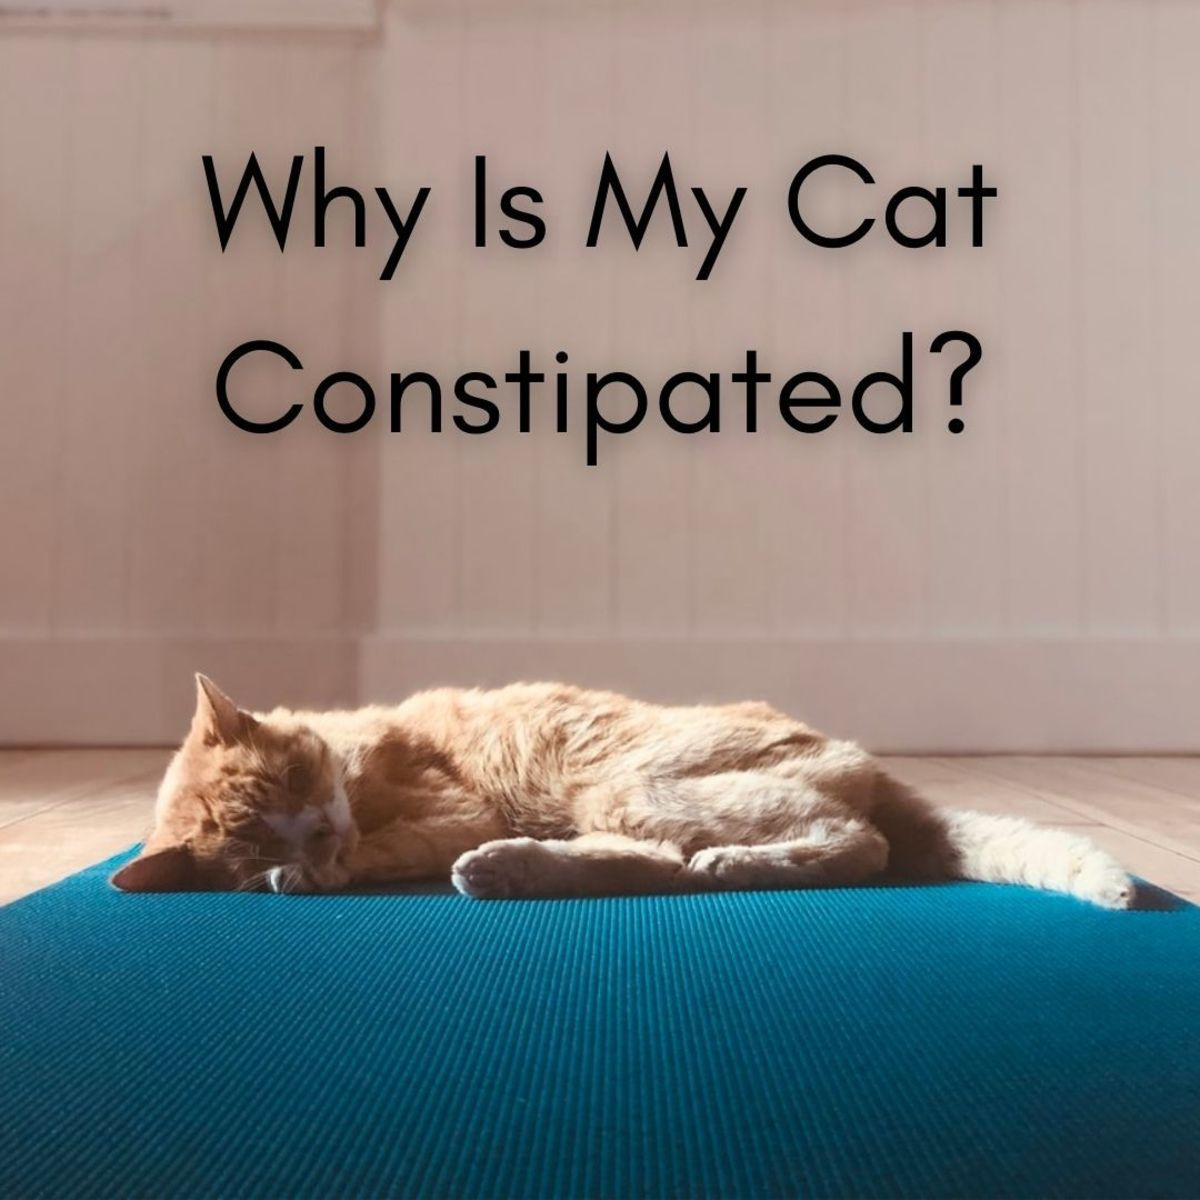 Constipation in cats is a pretty common scenario, especially for obese, middle-aged, and senior cats.